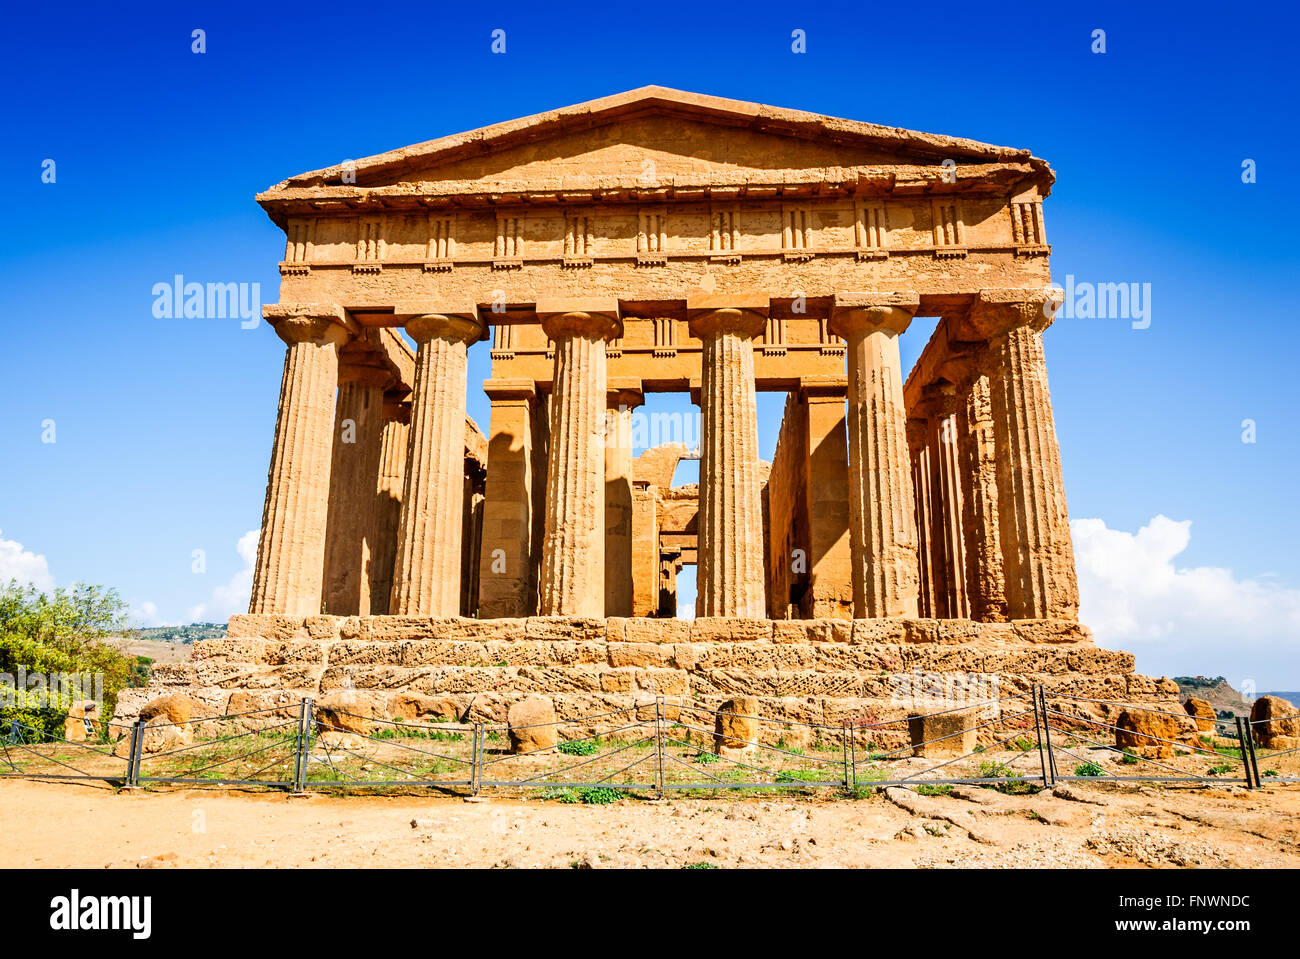 Agrigento, Sicily, Italy. Ercole Ancient Greek temple in the Valley of the Temples, Sicilian island. - Stock Image